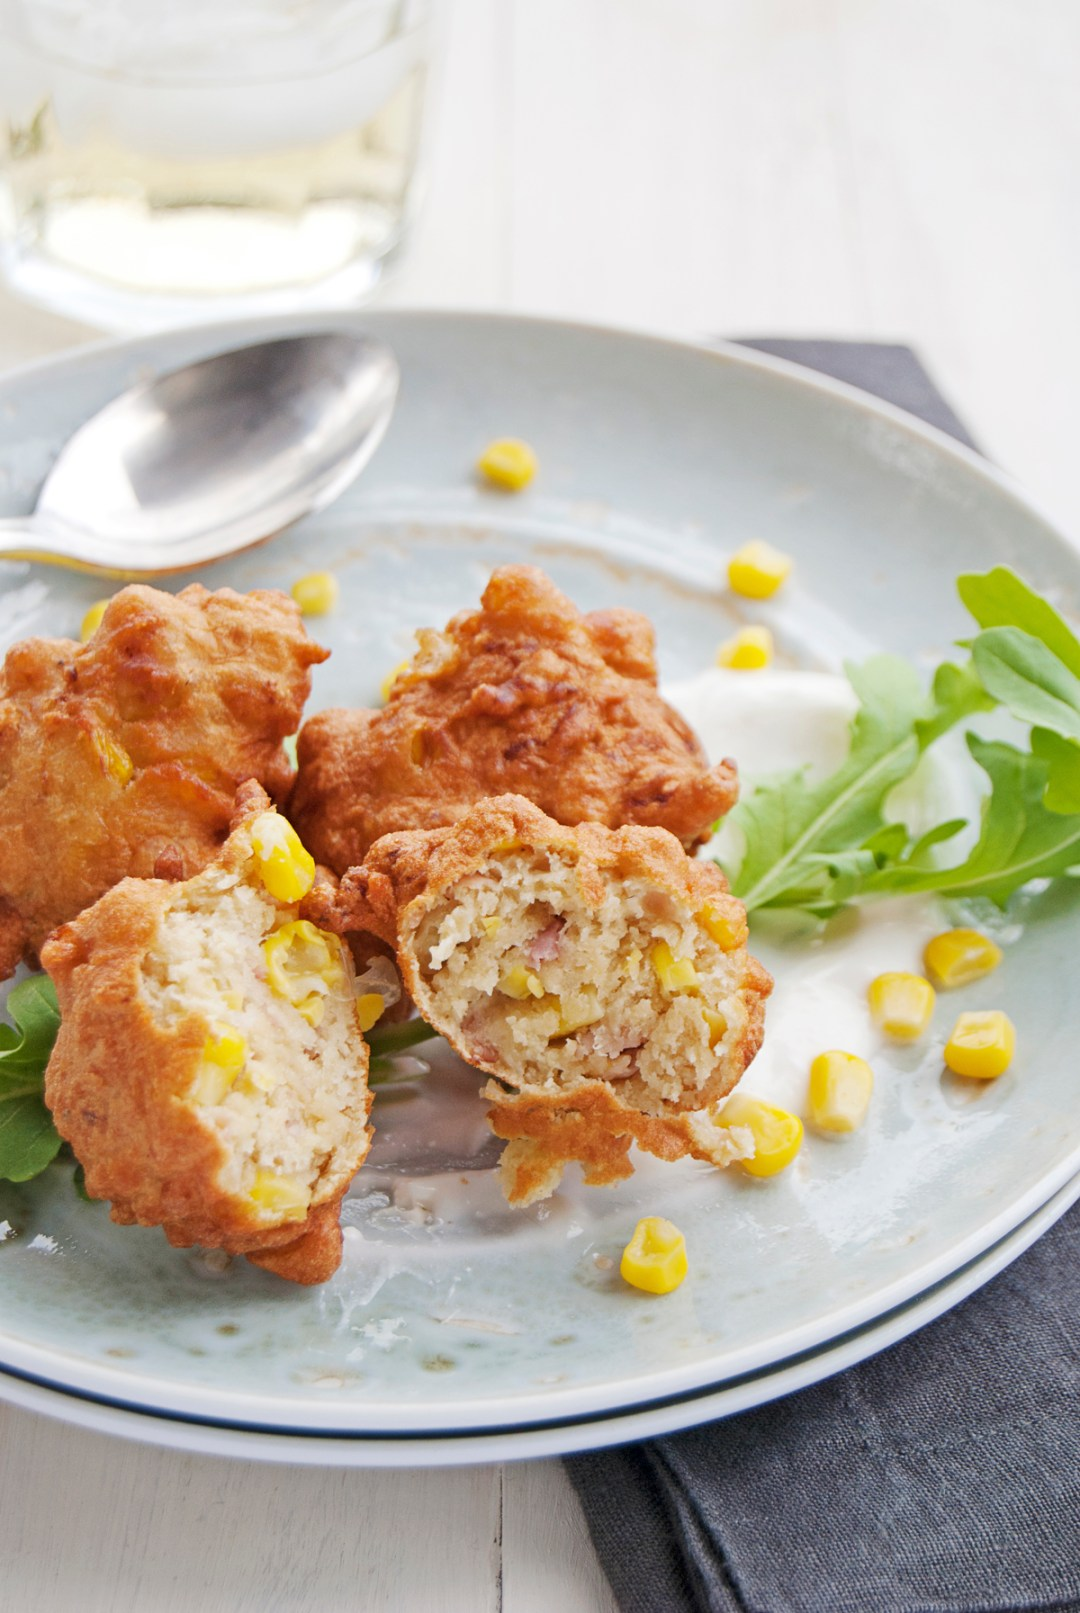 My recipe for prosciutto and corn fritters is based on an old family fritter recipe, and features beautiful shredded prosciutto and tasty corn kernels!